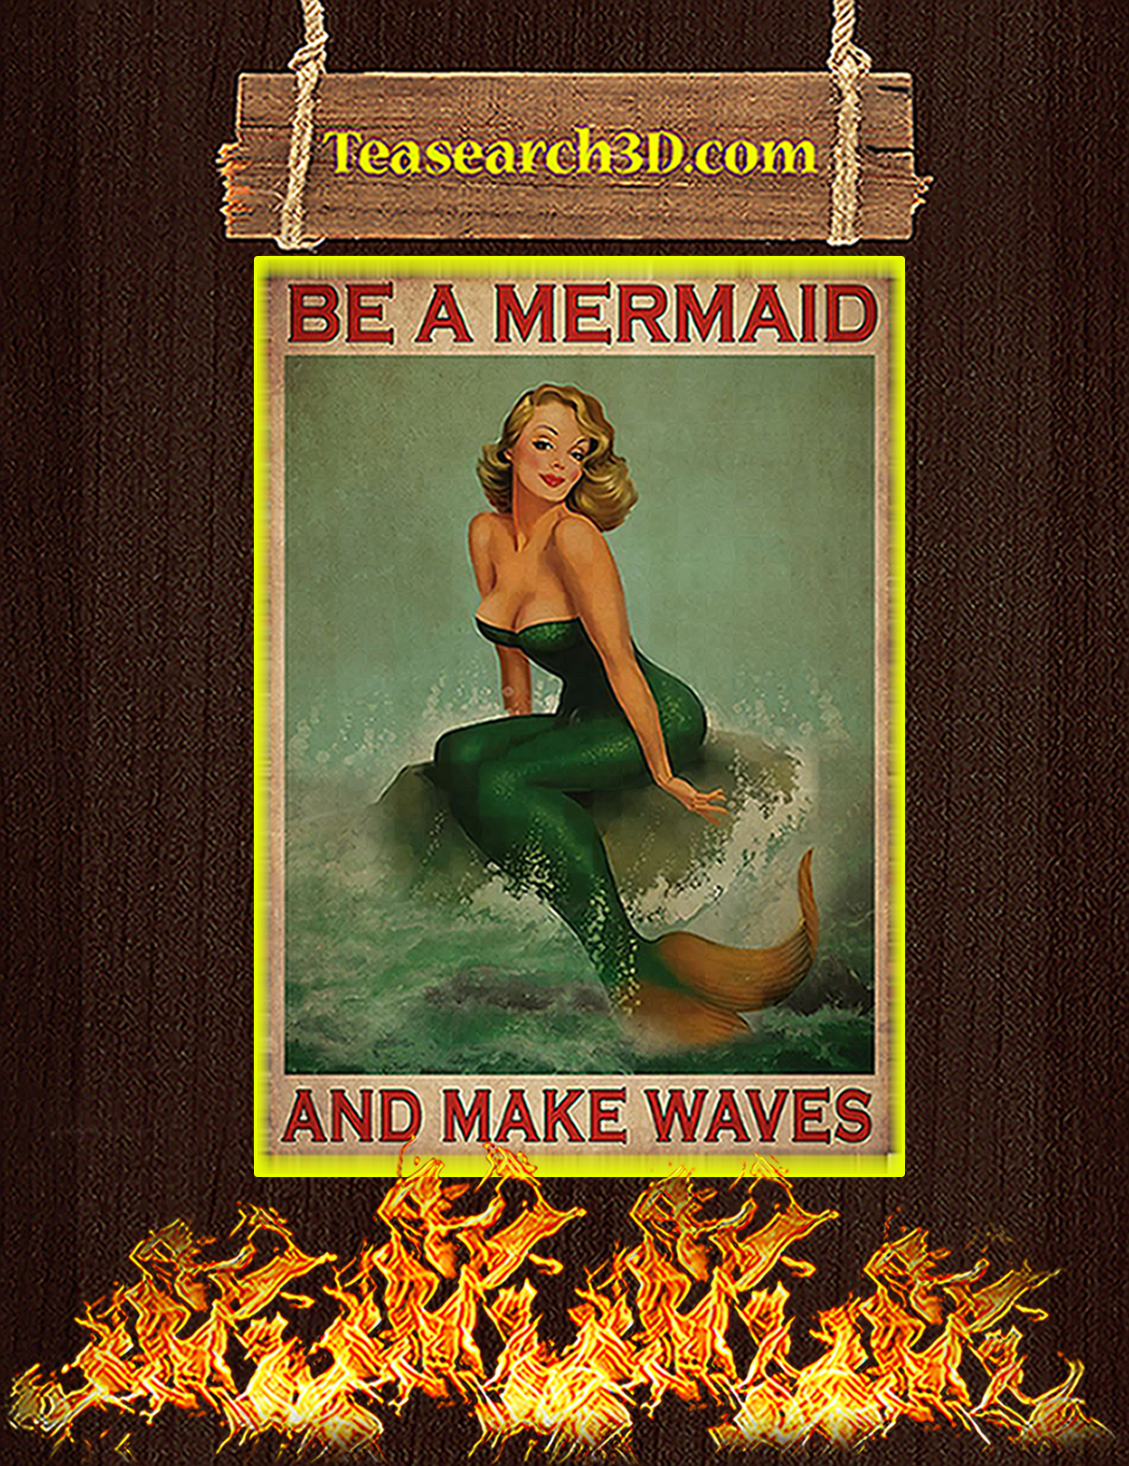 Be a mermaid and make waves poster A3